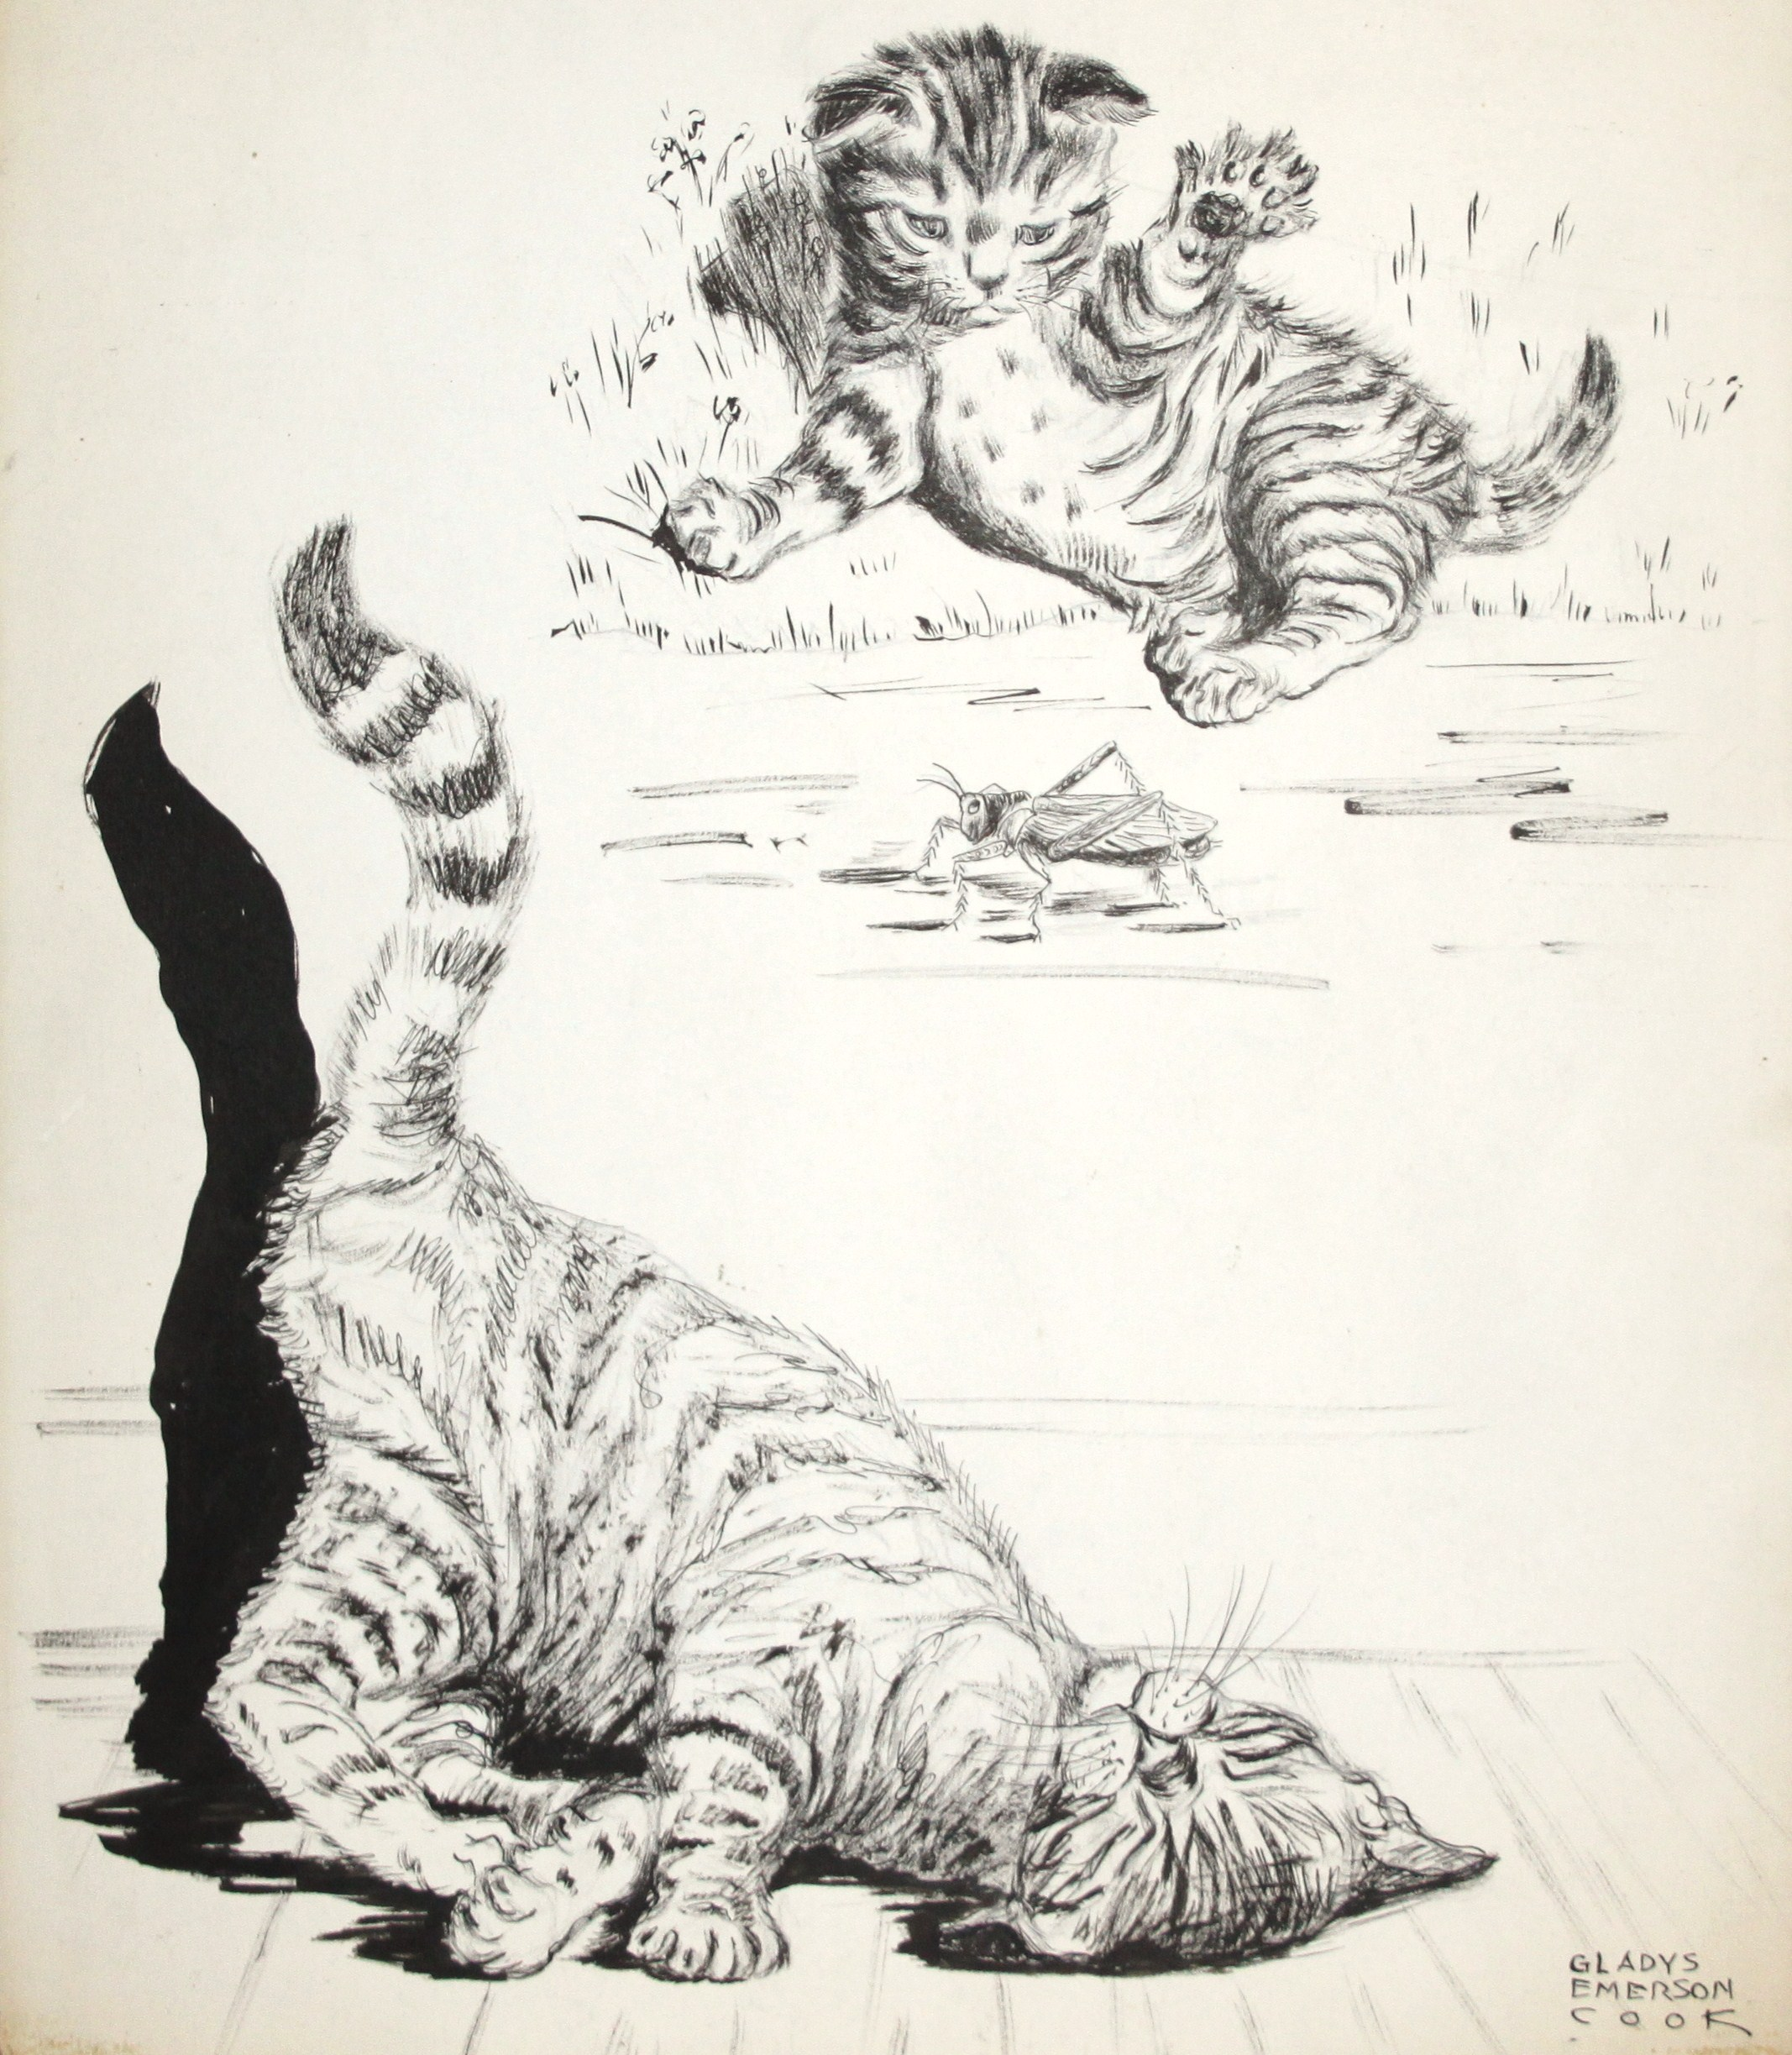 Click to see full size: Pen & ink of two Tabby Kittens by Gladys Emerson Cook (American, 1899-1976)- Pen and ink on paper of two Tabby kittens at play, one with a cricket, by Gladys Emerson Cook (American, 1899-1976).These kittens are most likely those that appear in the artist book